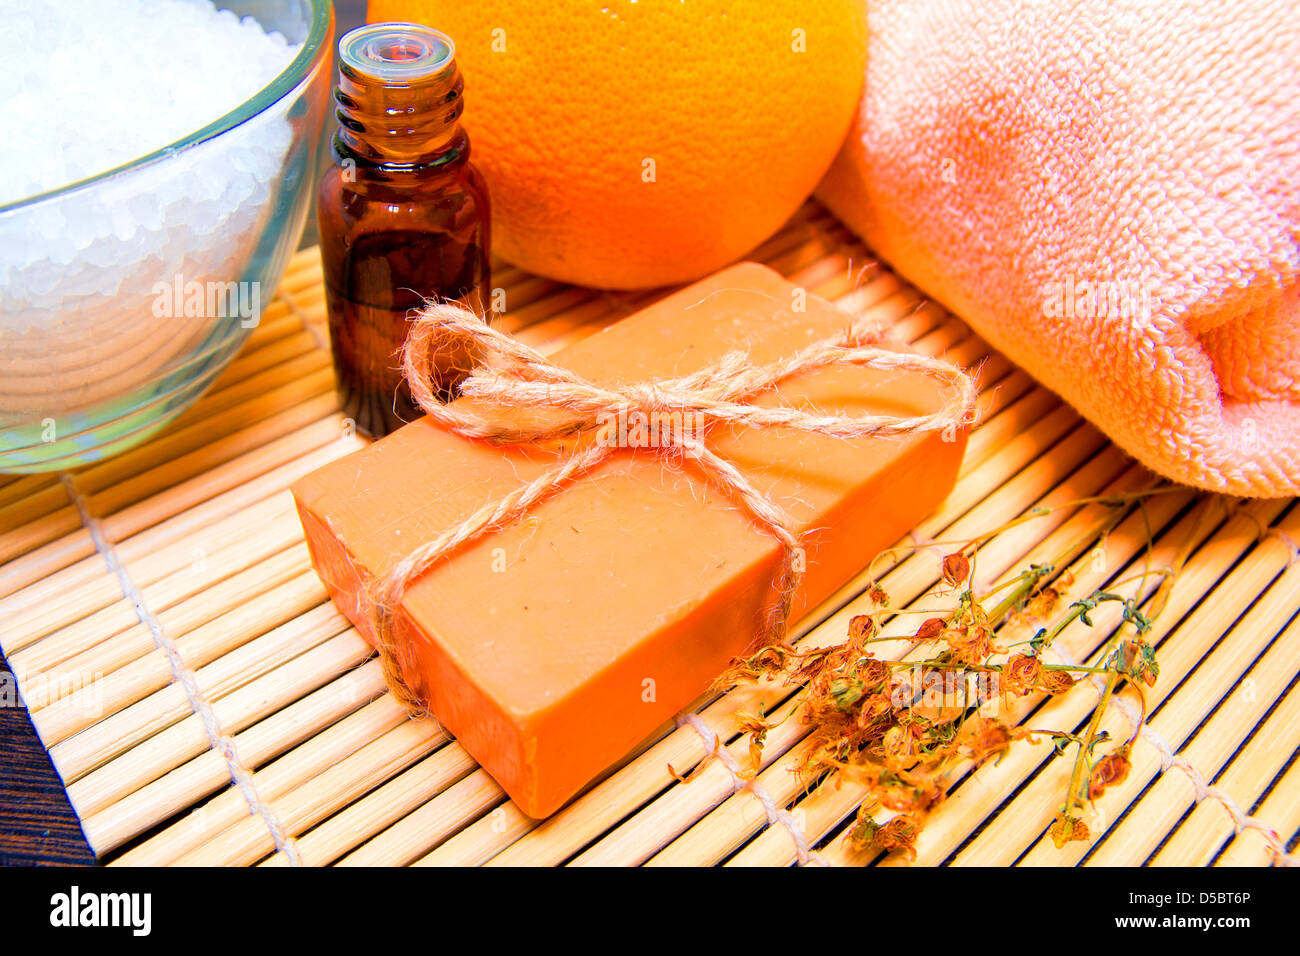 Natural handmade soap, essential oil, dried herbs, bath salt, orange and towel on bamboo mat. Spa concept. - Stock Image